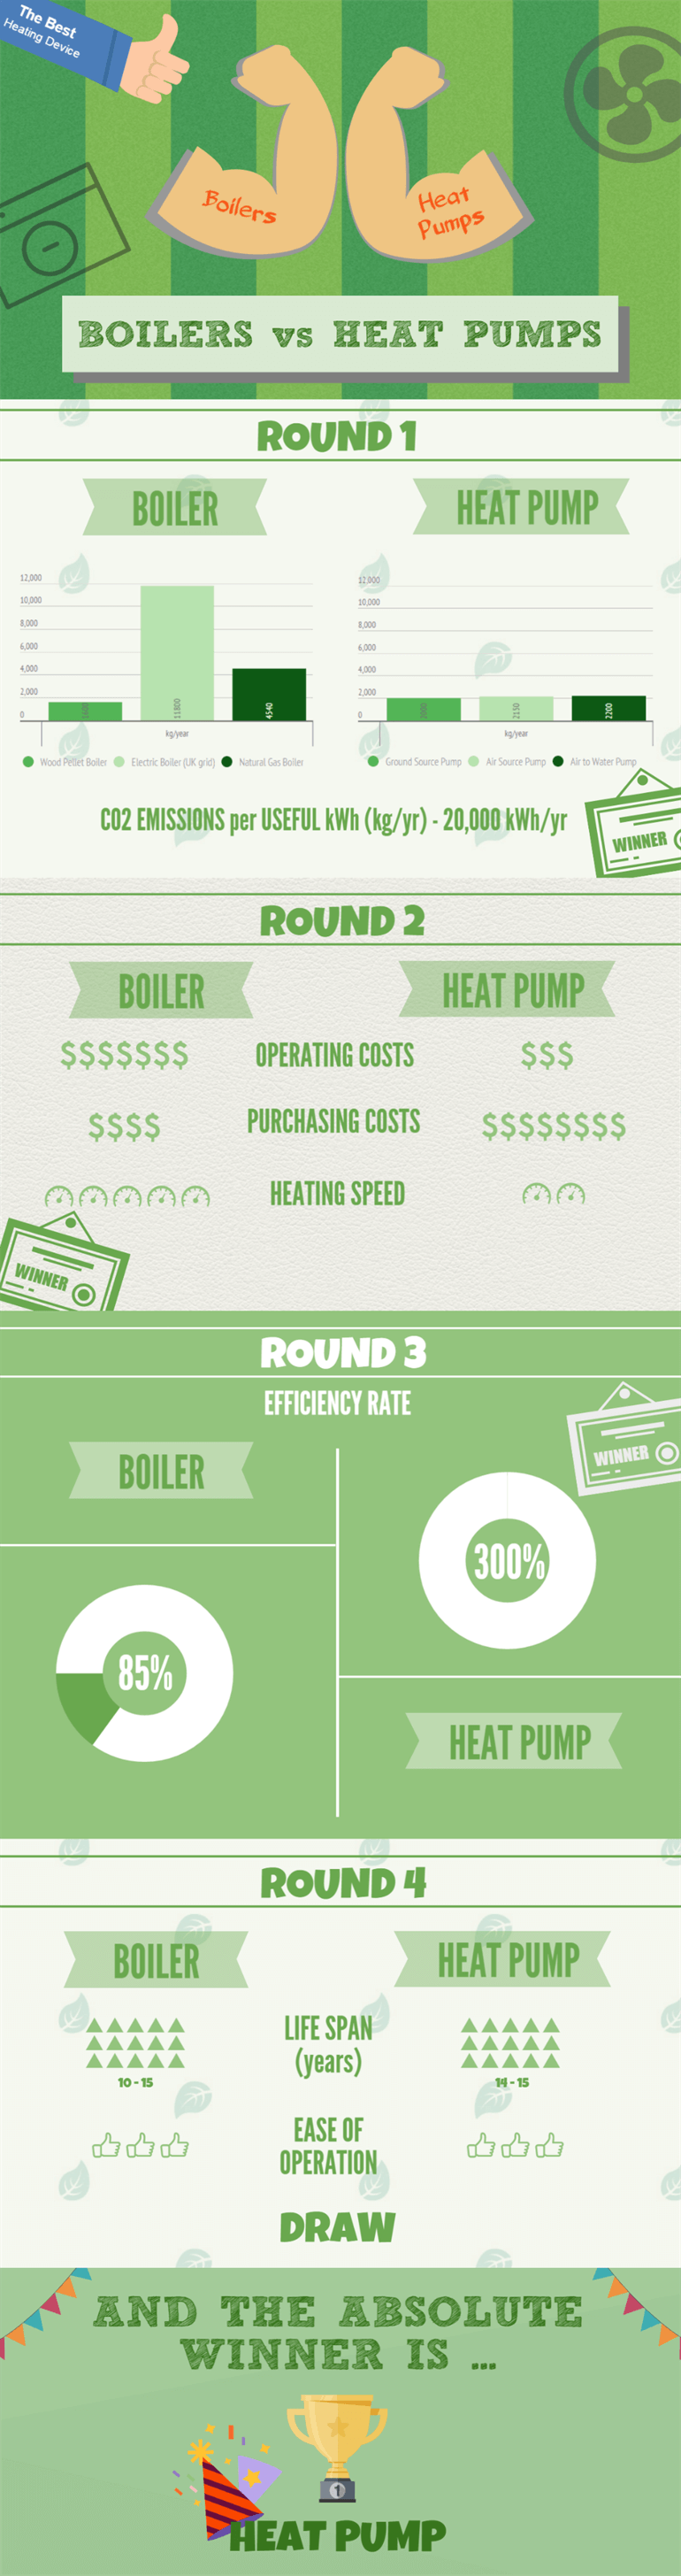 Boilers vs Heat Pumps